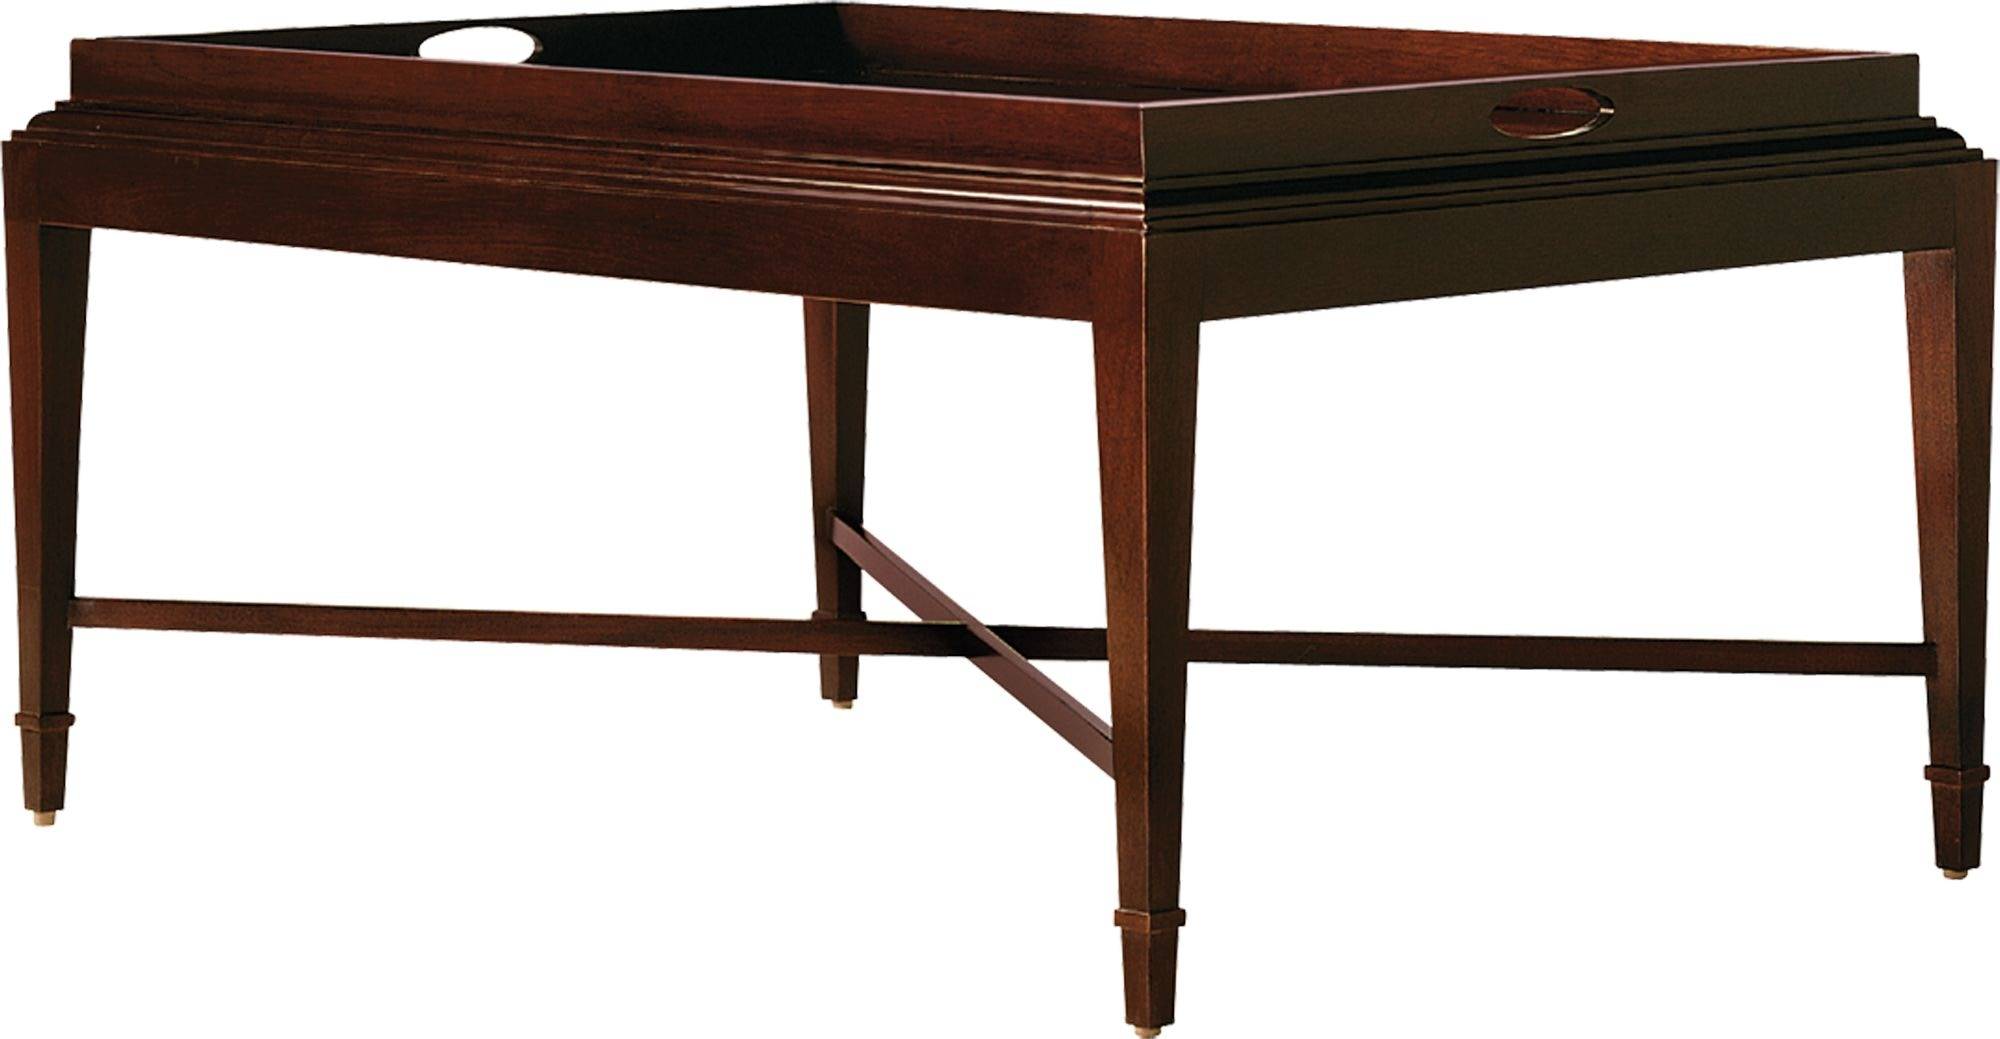 Baker Furniture Barbara Barry Tray Coffee Table 3451